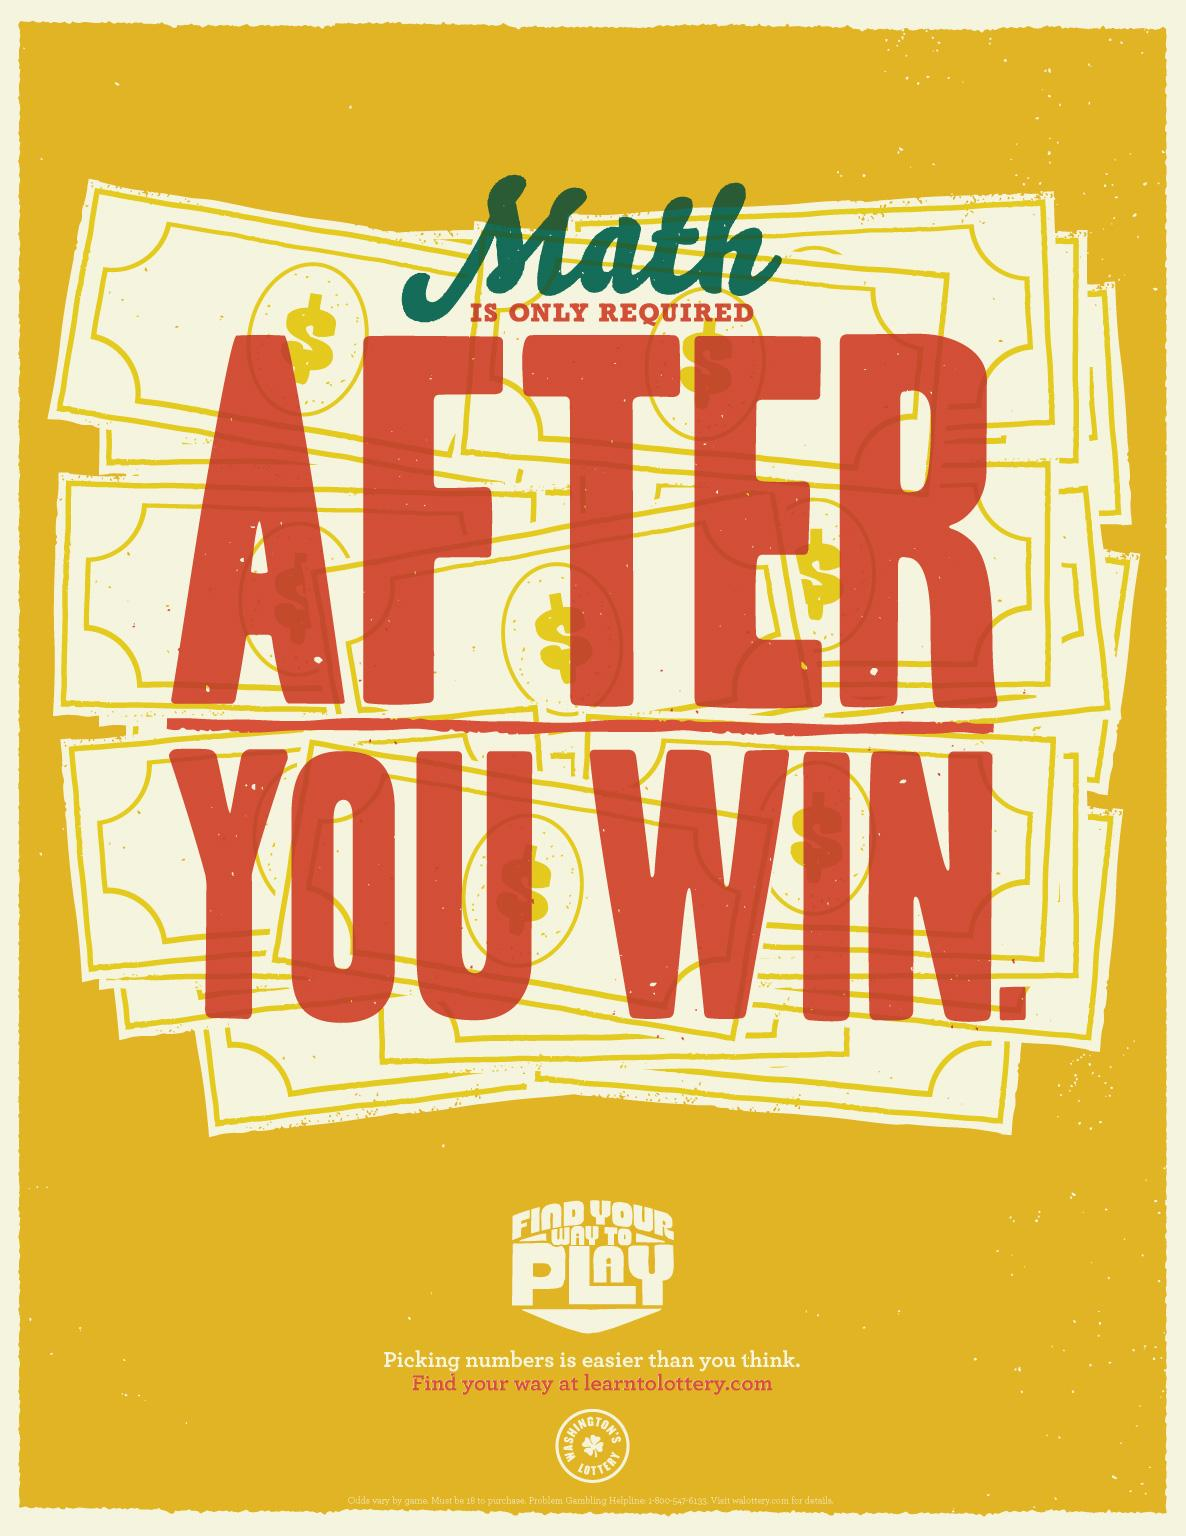 Washington Lottery Outdoor Ad -  Math